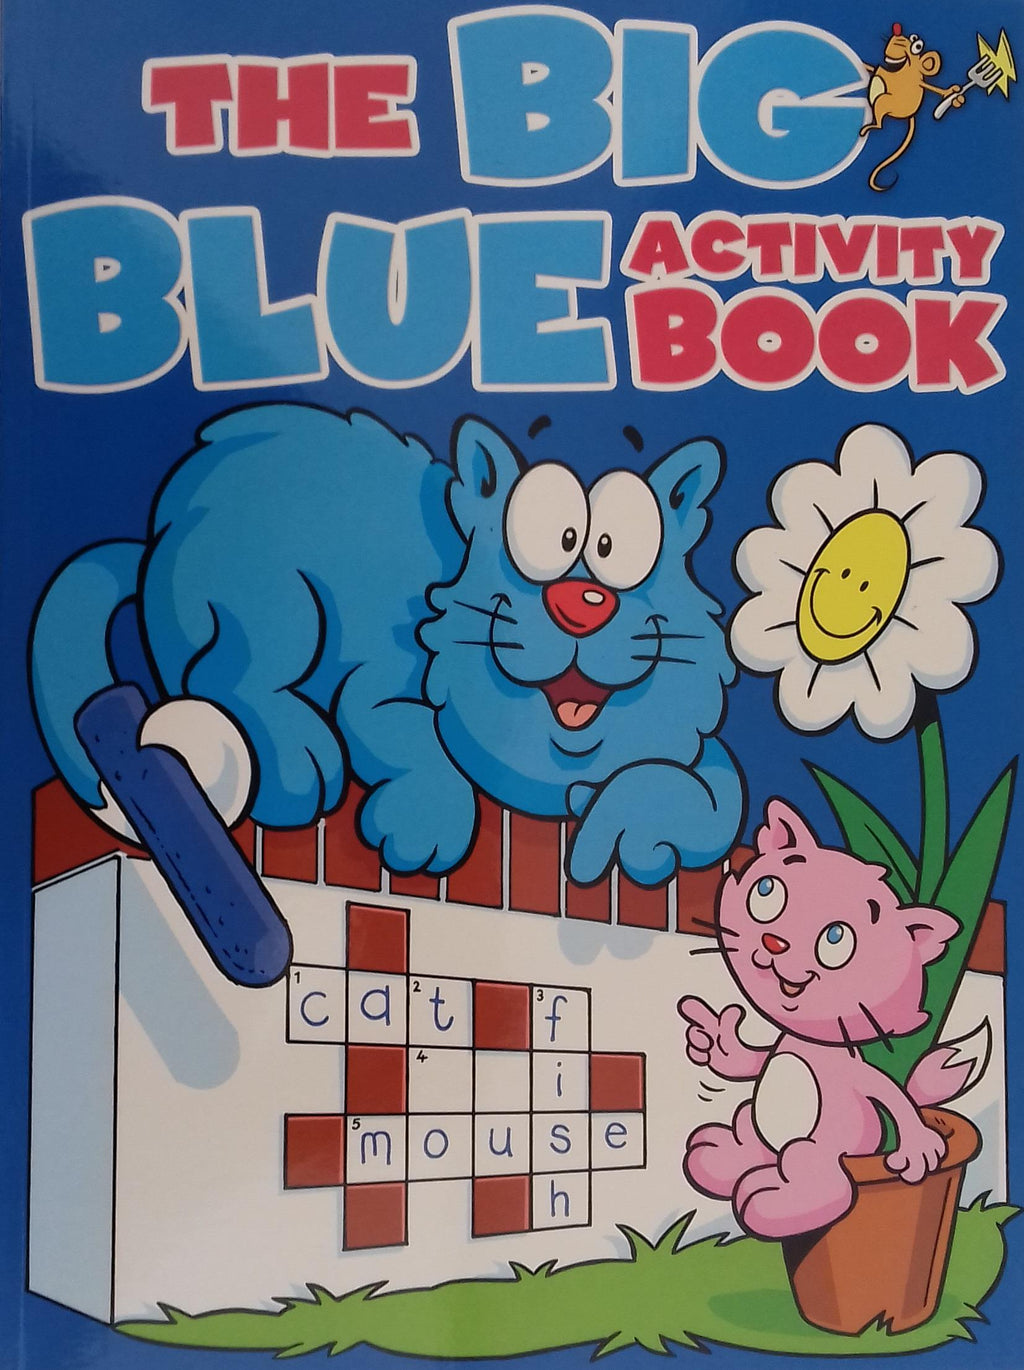 Big Blue Activity Book, The